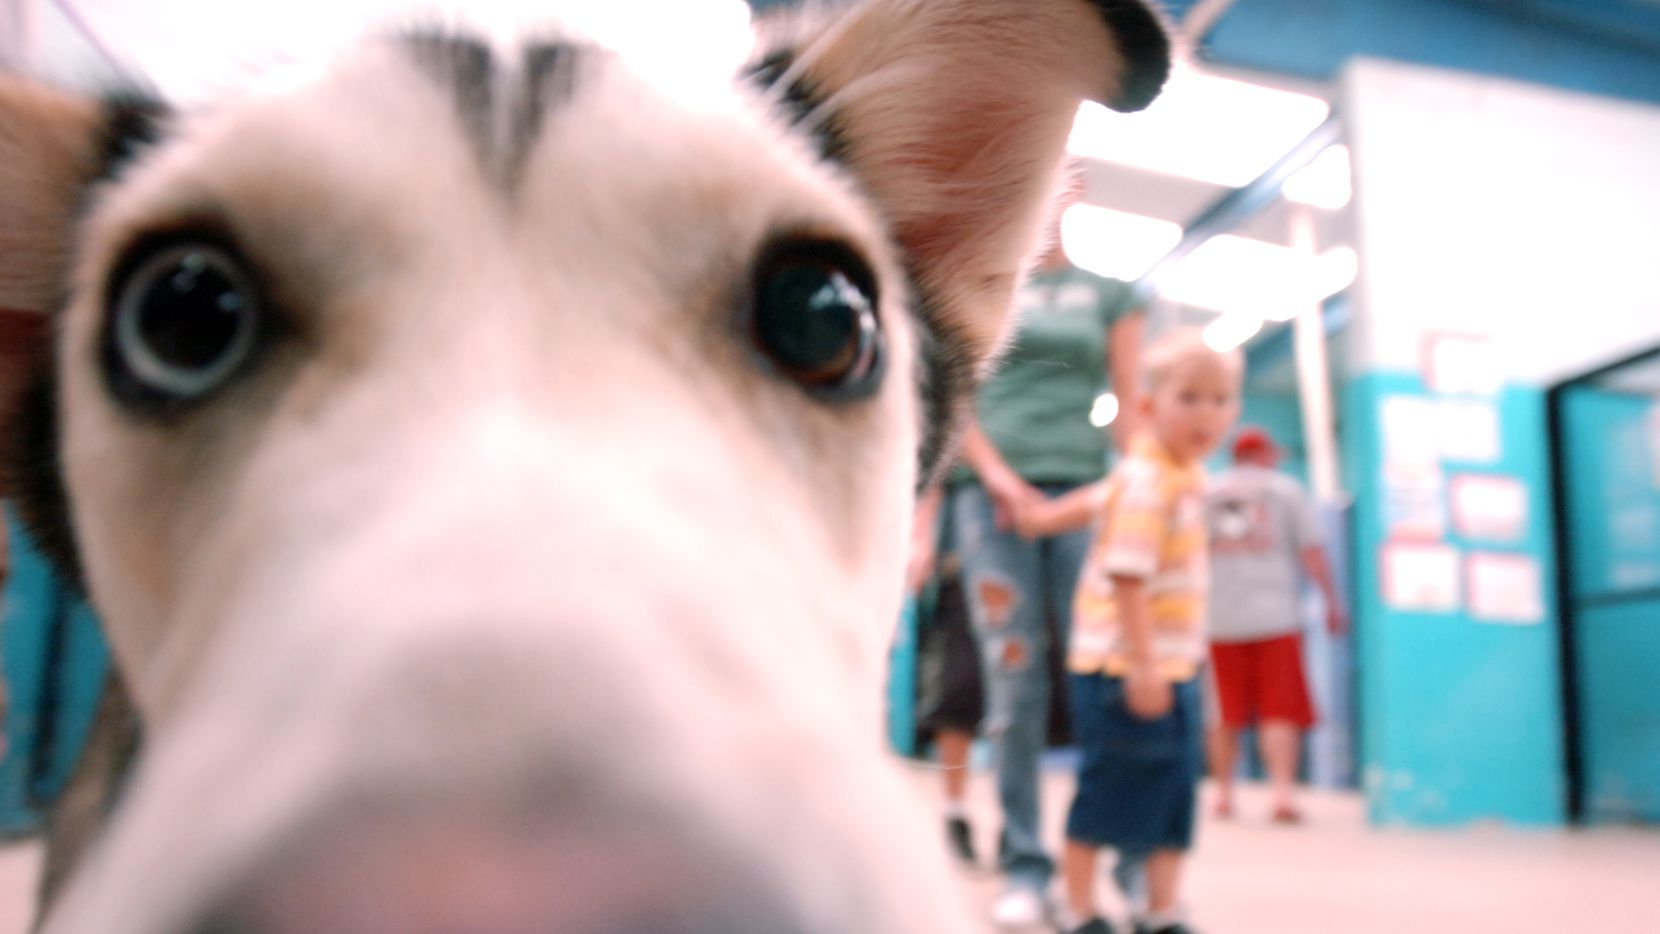 The Allen Animal Control and Shelter's goal this year is to initiate a spay-neuter program, a shelter advisory official told the Allen City Council on Tuesday. (File photo)